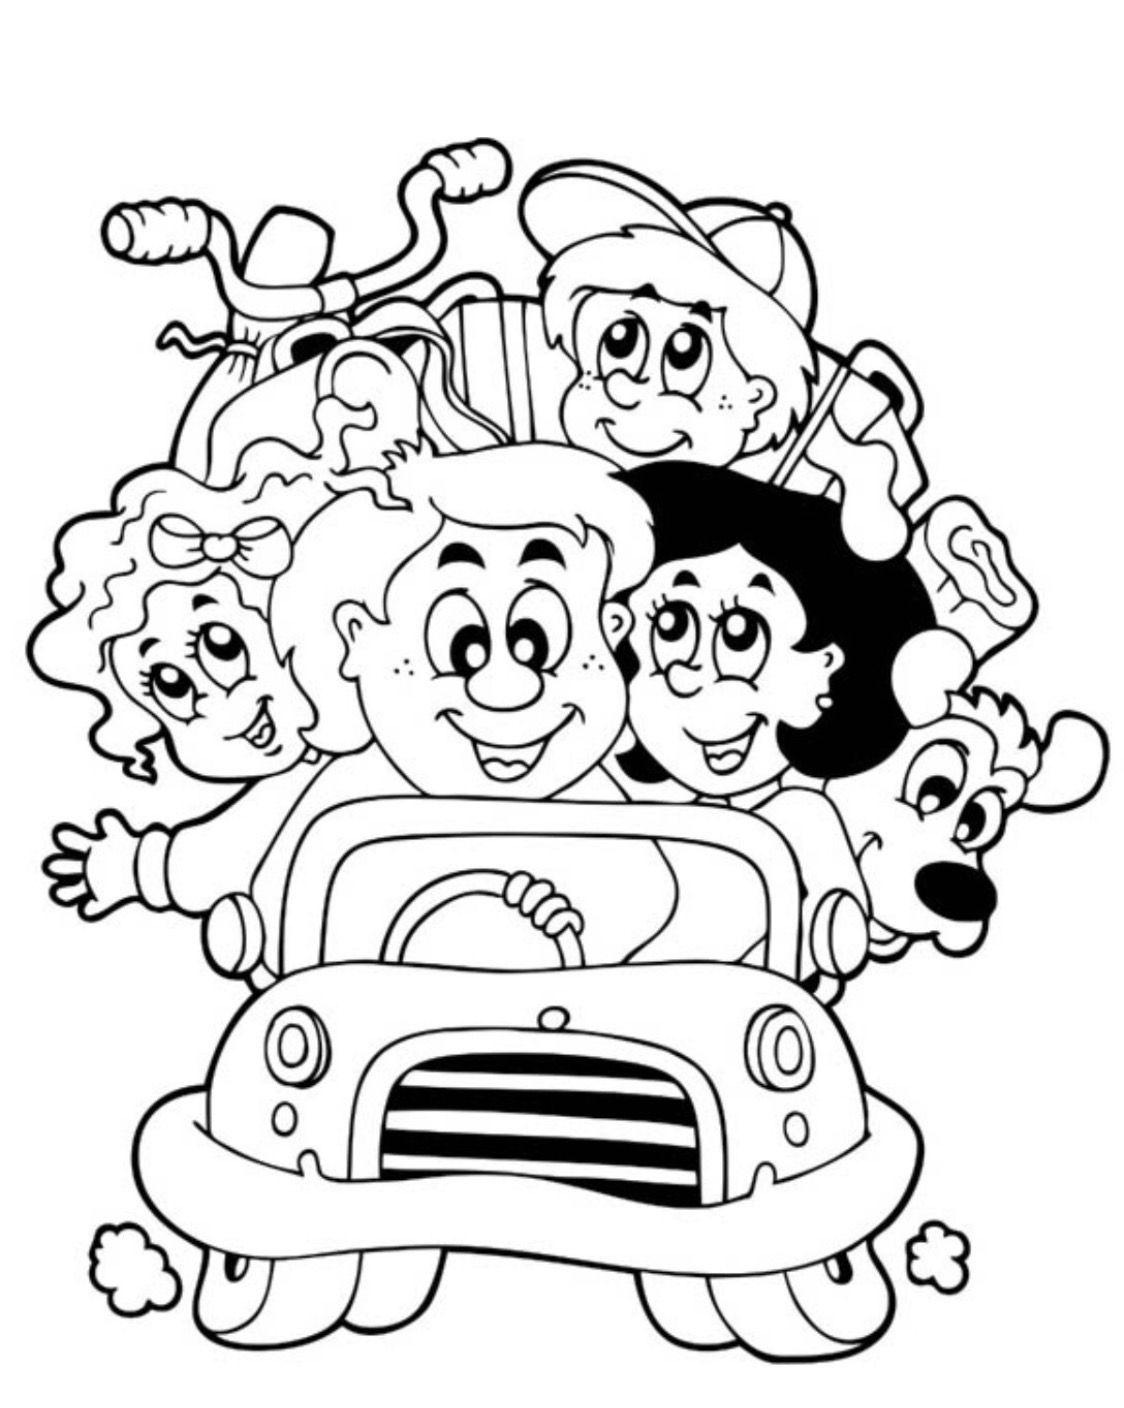 Family Road Trip Coloring Page Family Coloring Pages Family Coloring Preschool Coloring Pages